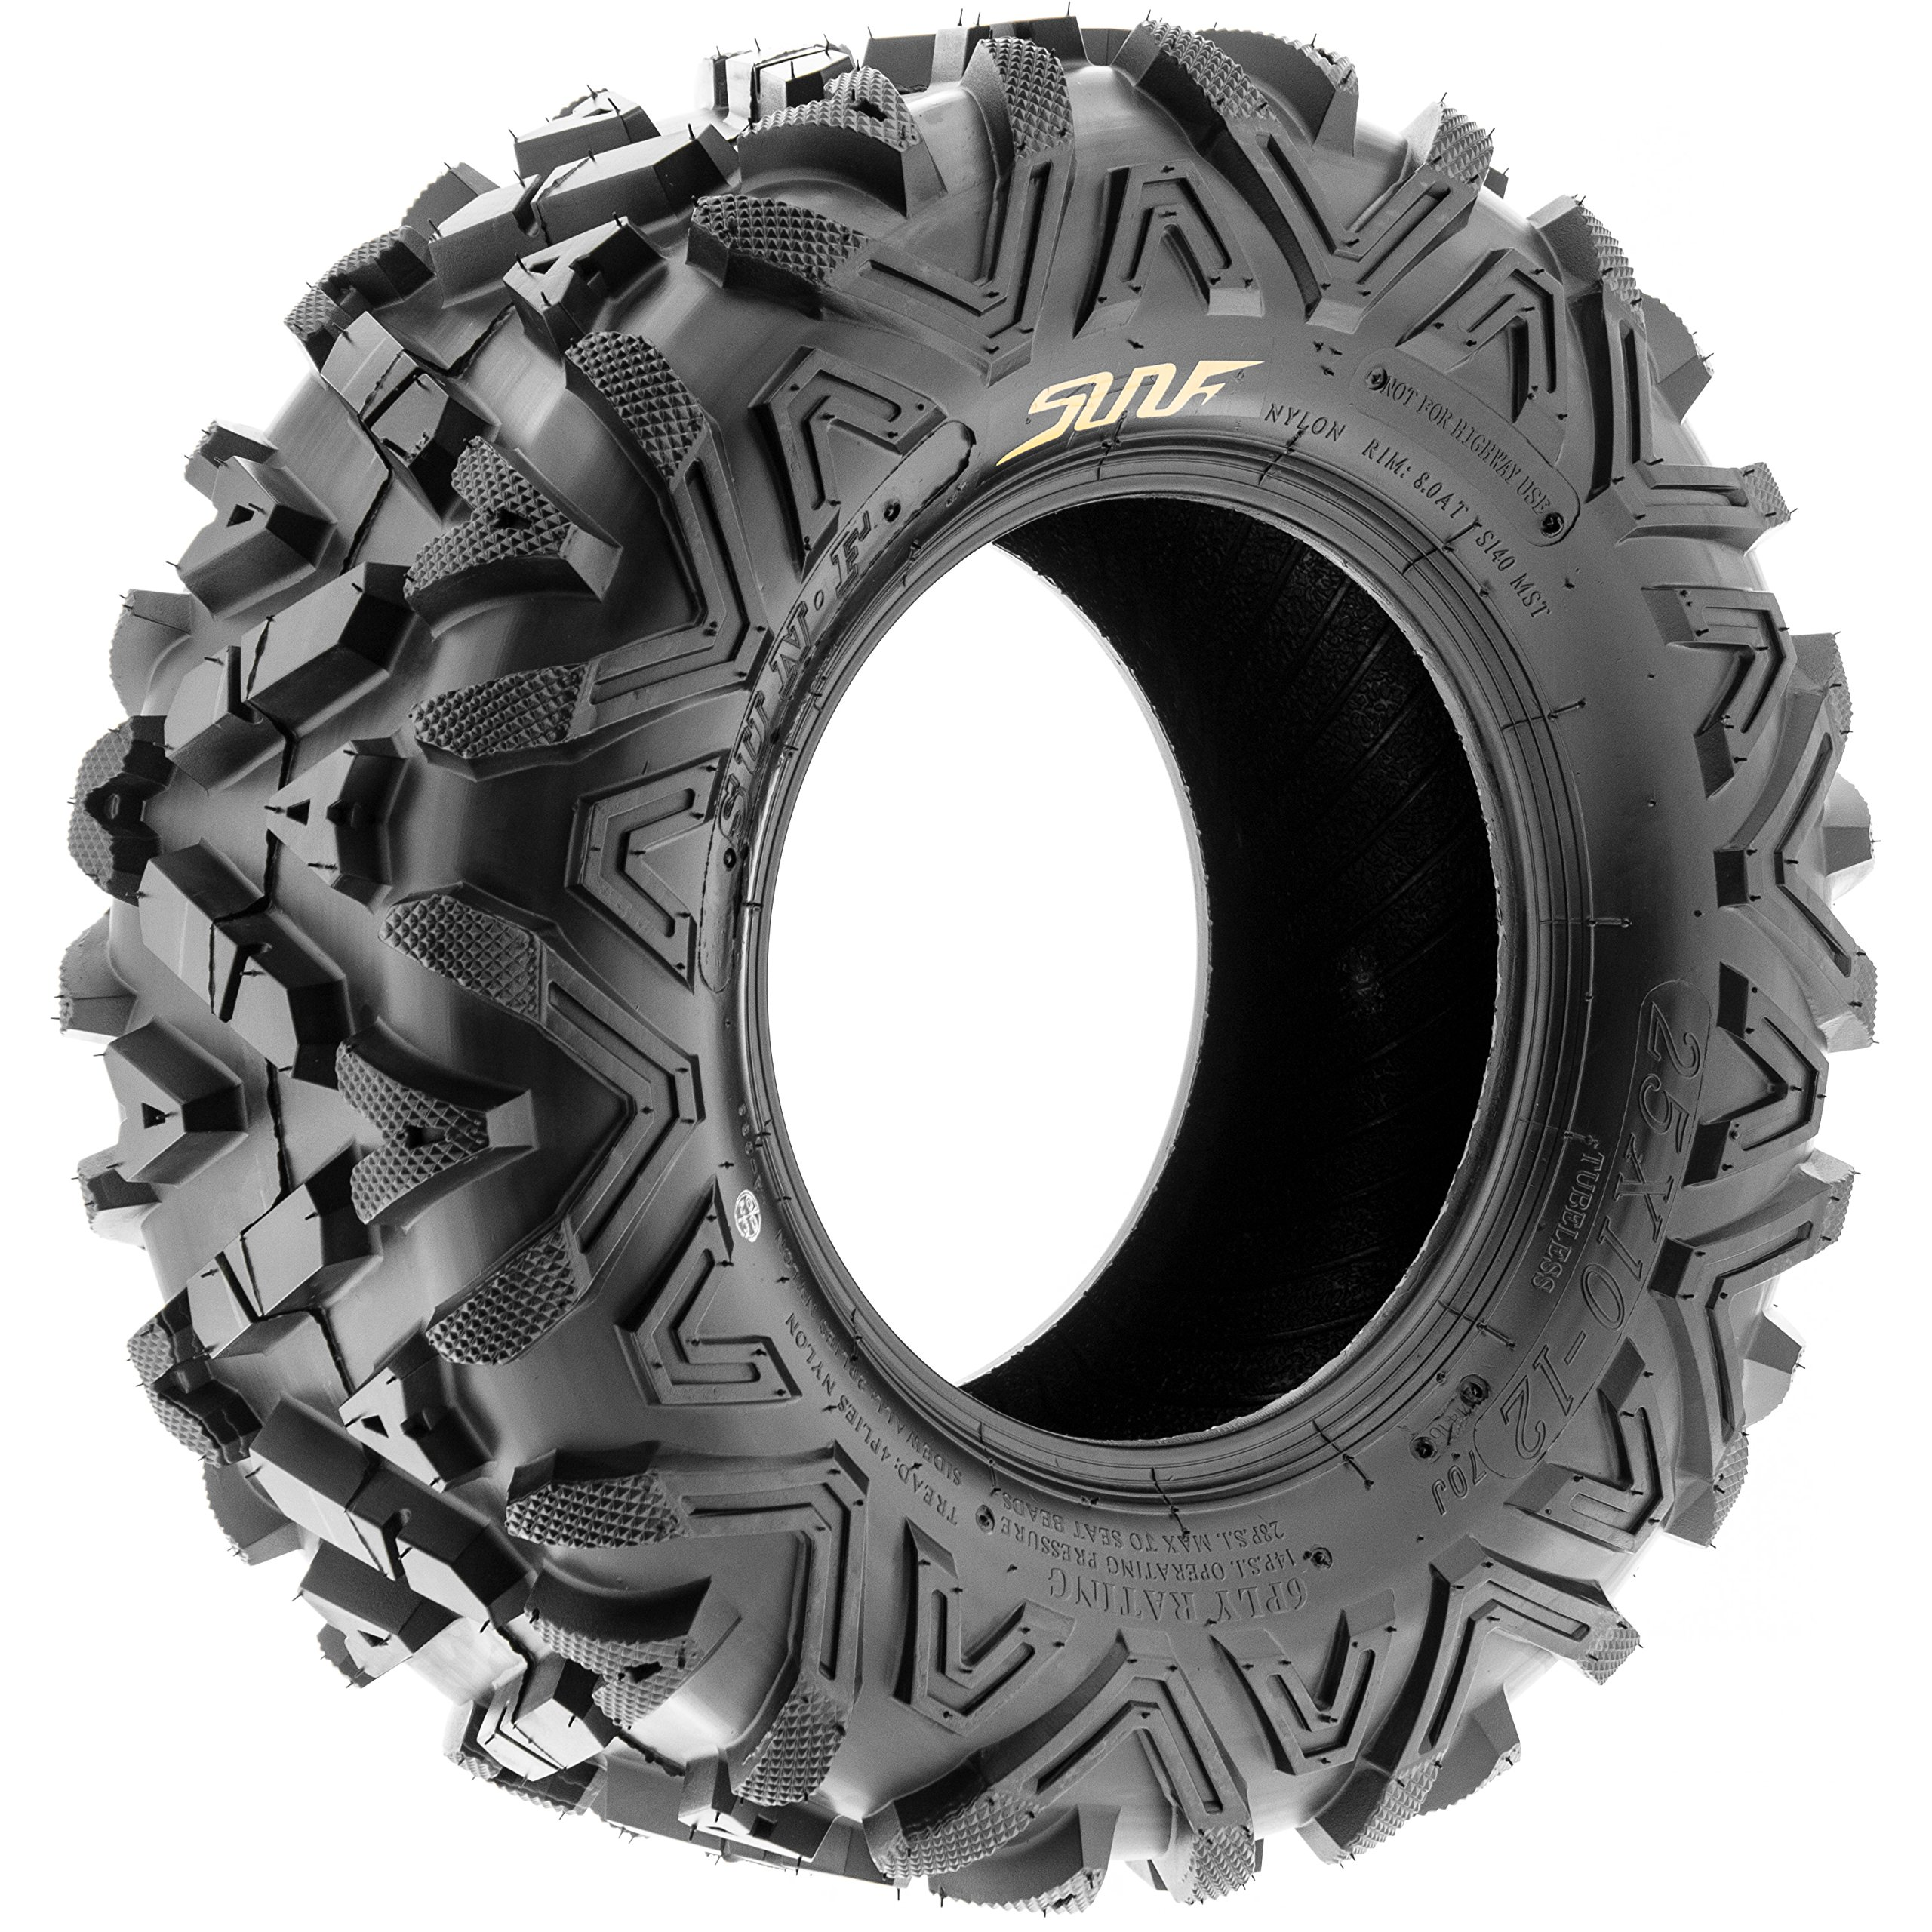 Pair of 2 SunF A033 Power.I AT 25x10-11 ATV UTV Off-Road Tires, All-Terrain, 6 PR, Tubeless by SUNF (Image #9)